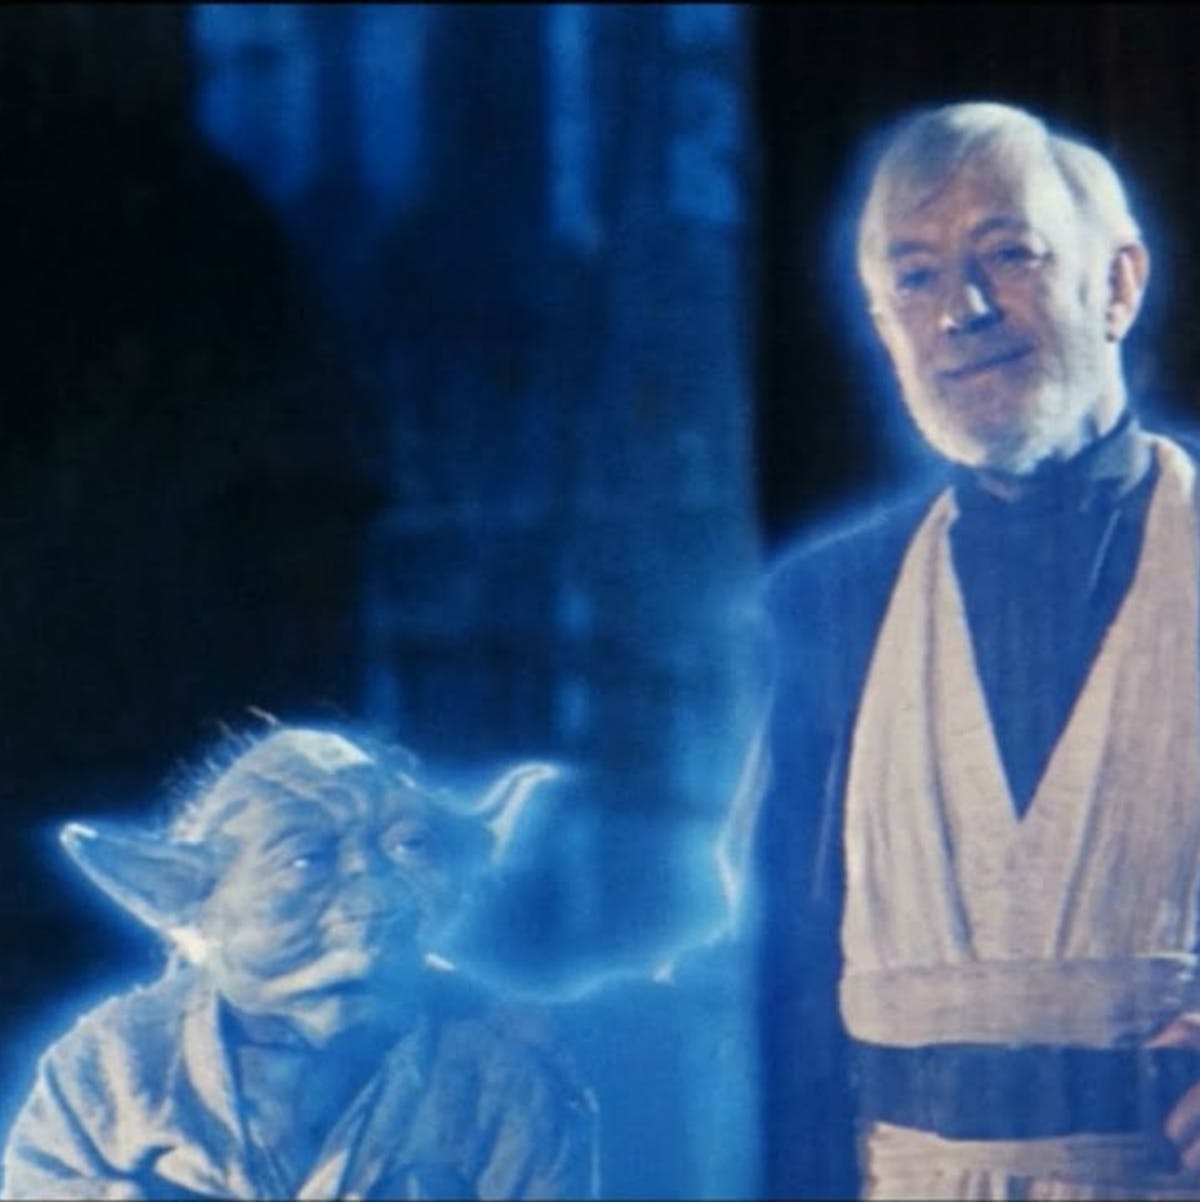 'Star Wars 9' Theory Says a Surprising Force Ghost Will Help Beat Palpatine